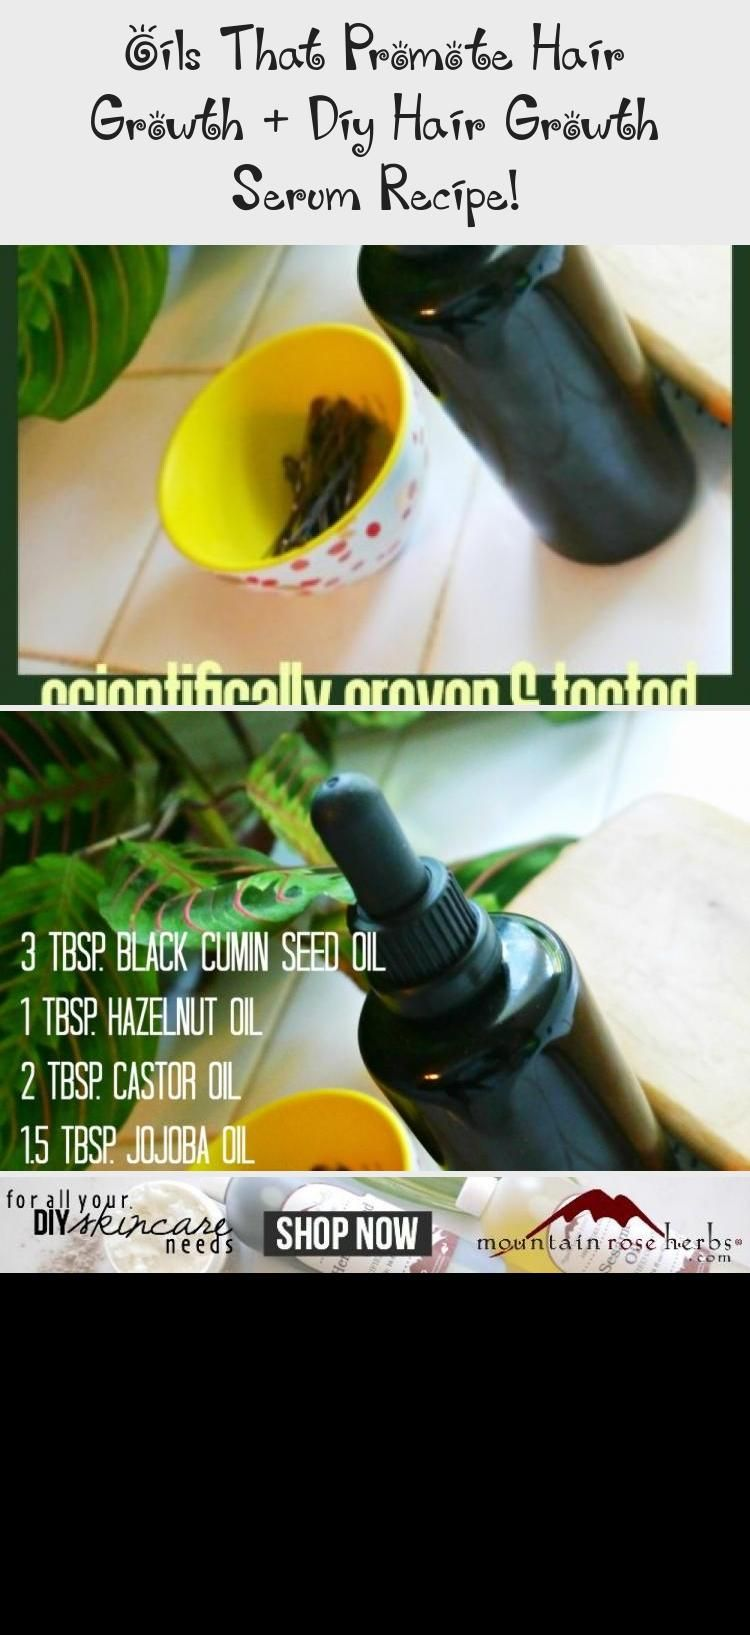 Oils that Promote Hair Growth + DIY Hair Growth Serum Recipe! - Jenni Raincloud #ManeNTailhairgrowth #hairgrowthInAWeek #Sulfur8hairgrowth #hairgrowthAfricanAmerican #hairgrowthAfterChemo #fasterhairgrowth